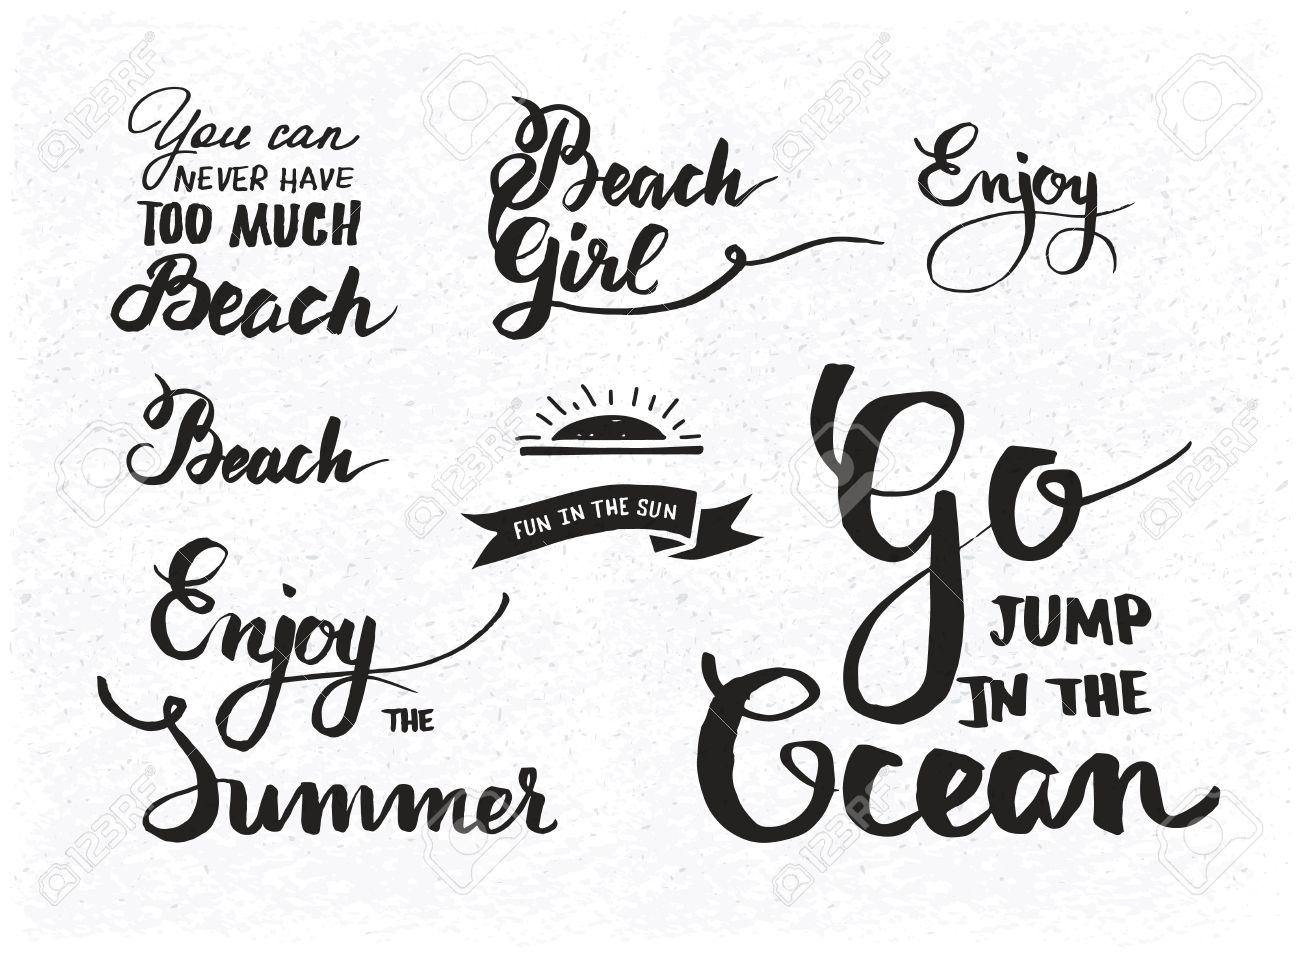 Set Of Summer Motivational Quotes About Beach Fun And Relaxation